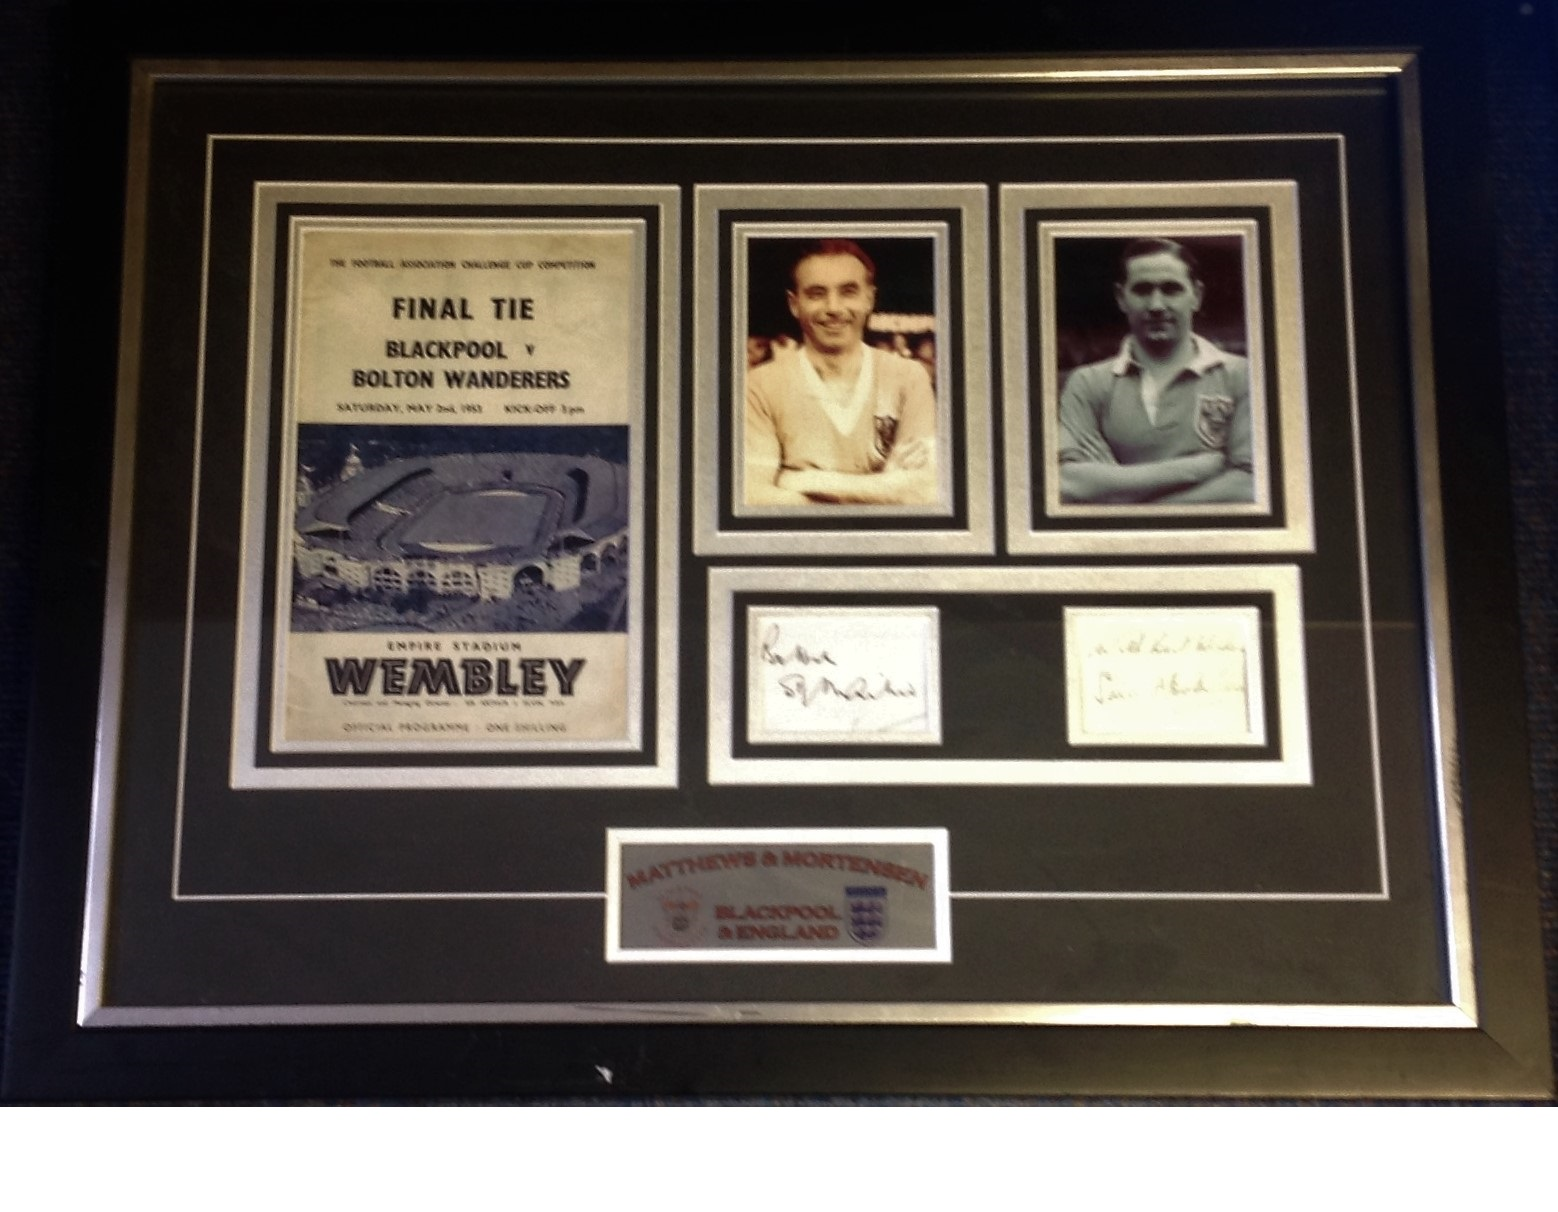 Lot 42 - Football Stanley Mathews and Stan Mortensen 22x28 mounted and framed signature piece includes